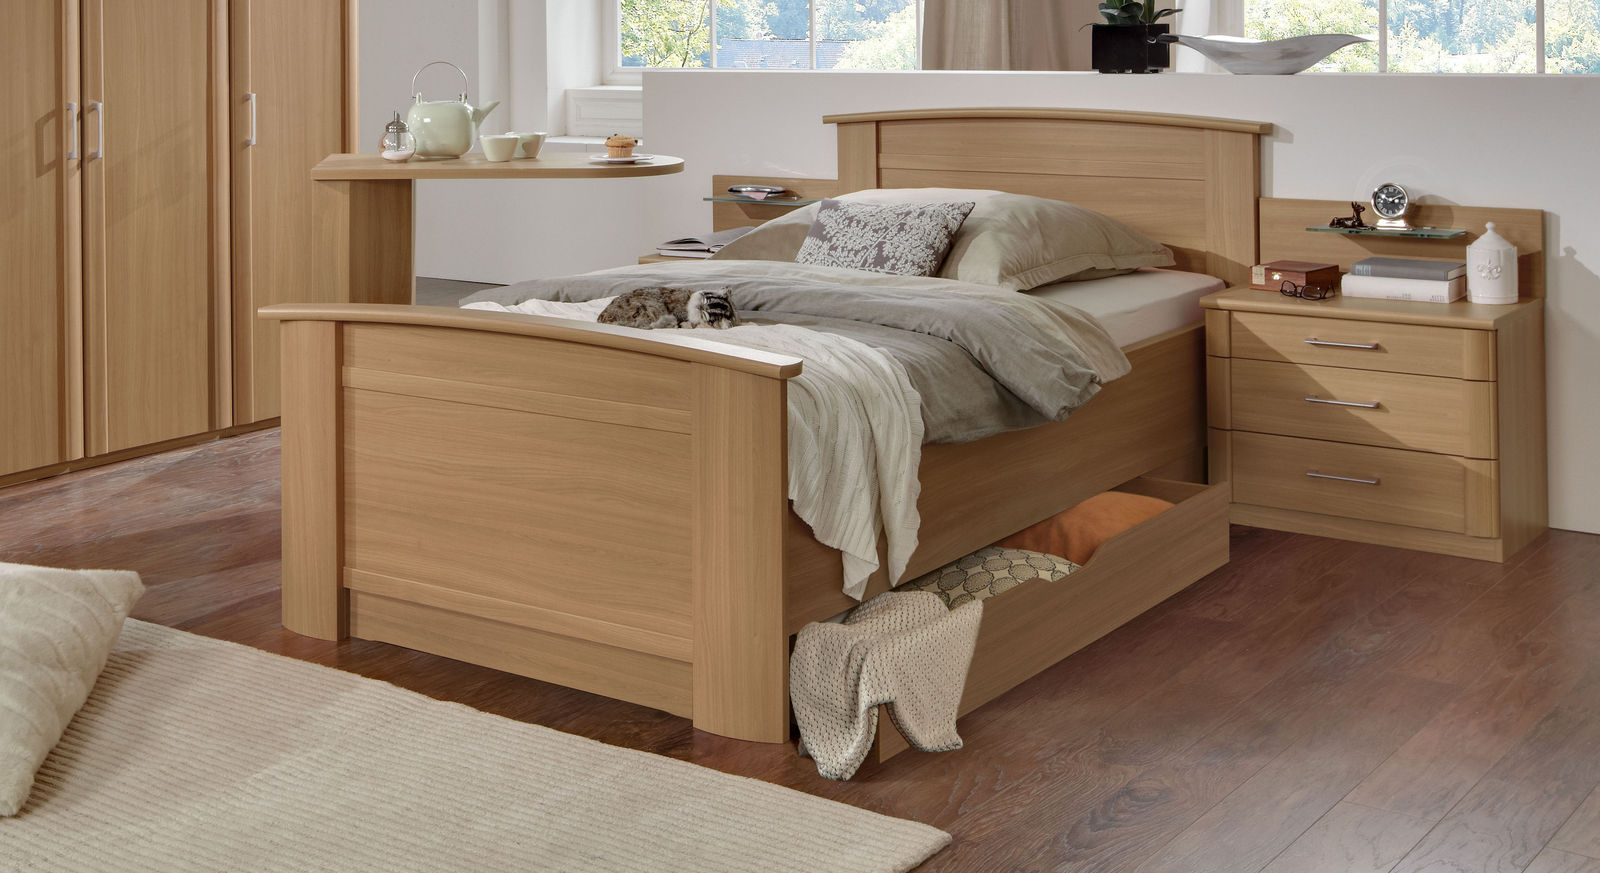 komfortable seniorenbetten im test und vergleich 2018 auf. Black Bedroom Furniture Sets. Home Design Ideas